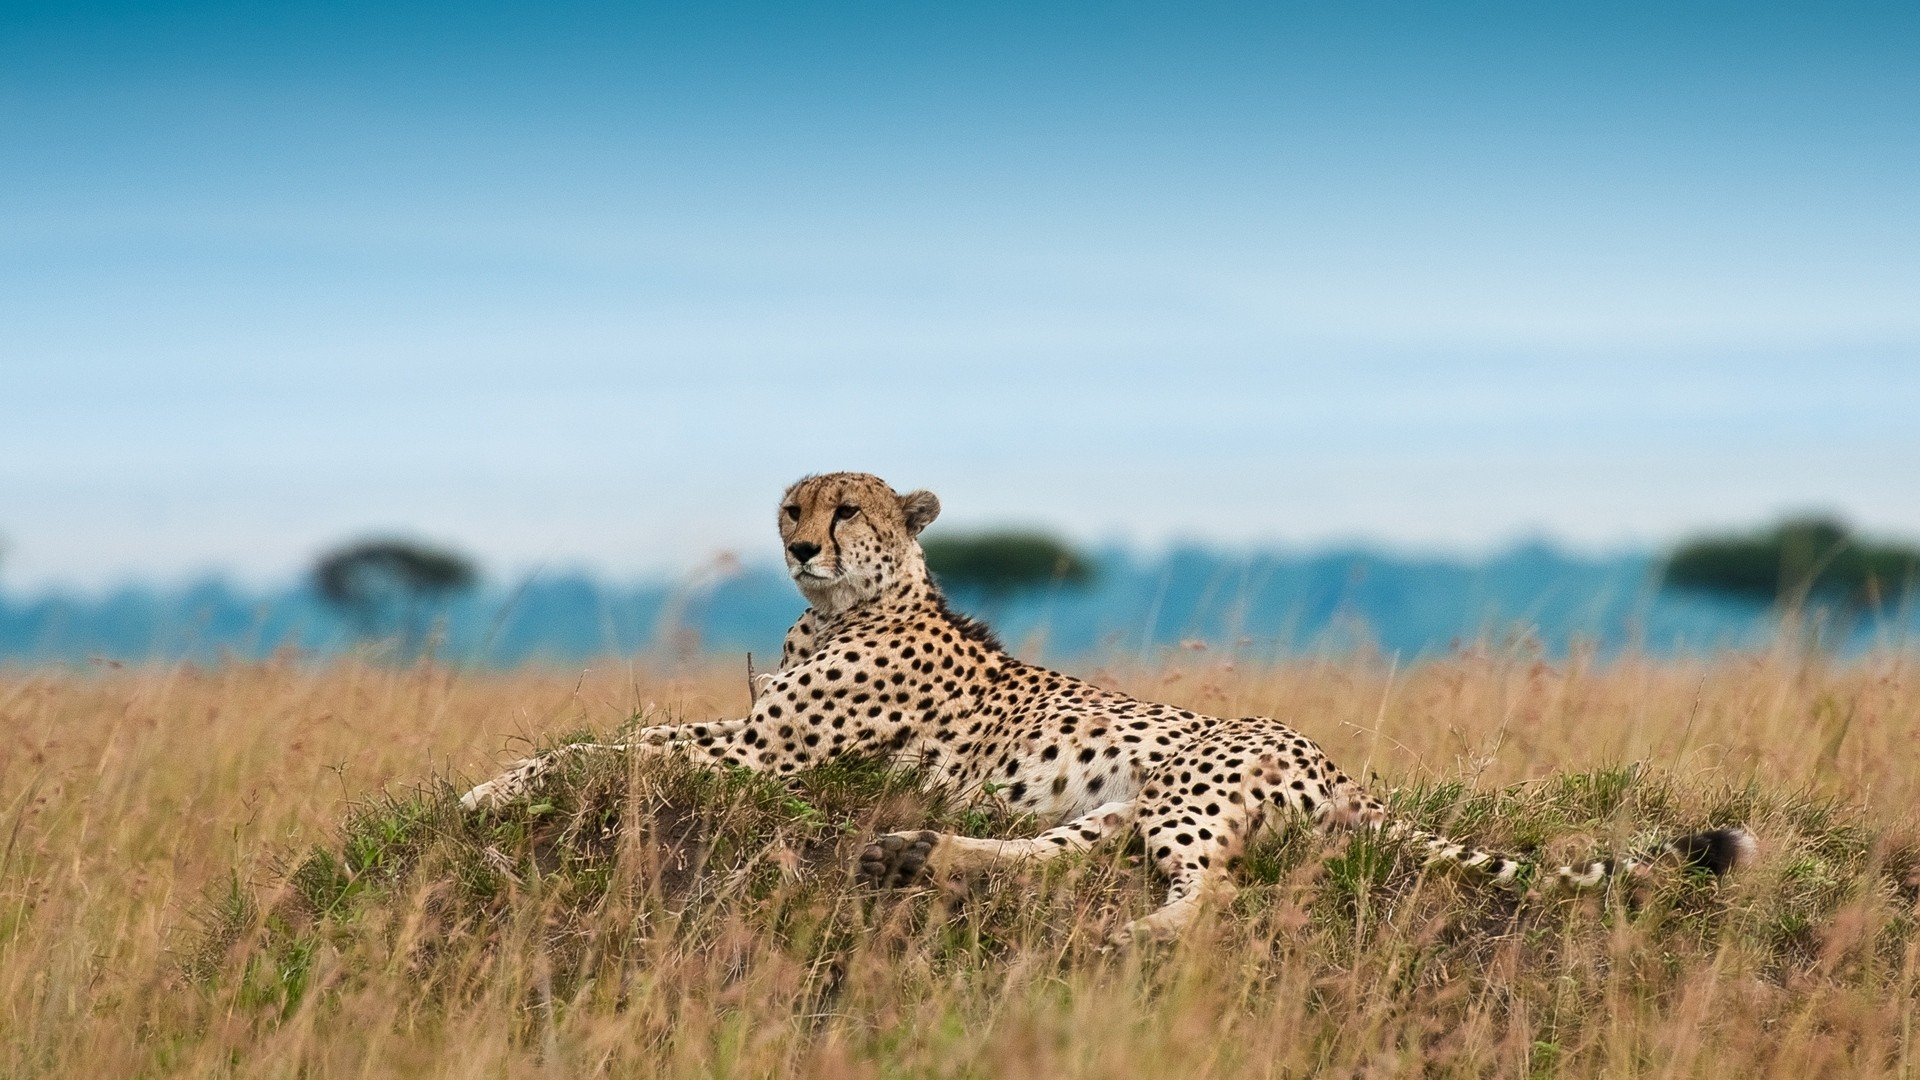 Cheetah Free Wallpaper